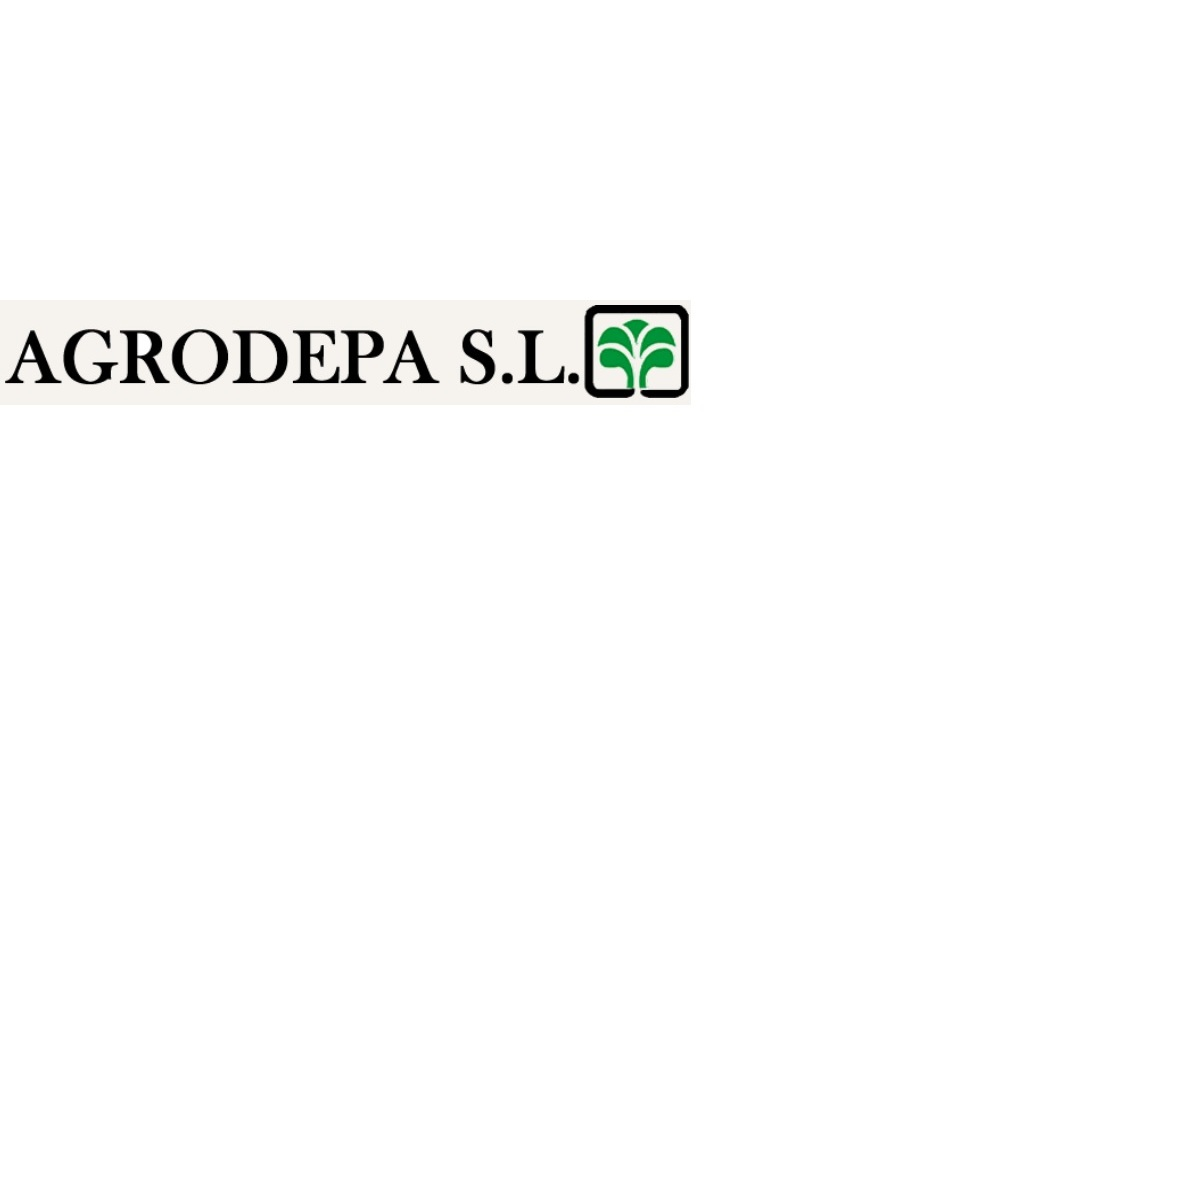 Agrodepa